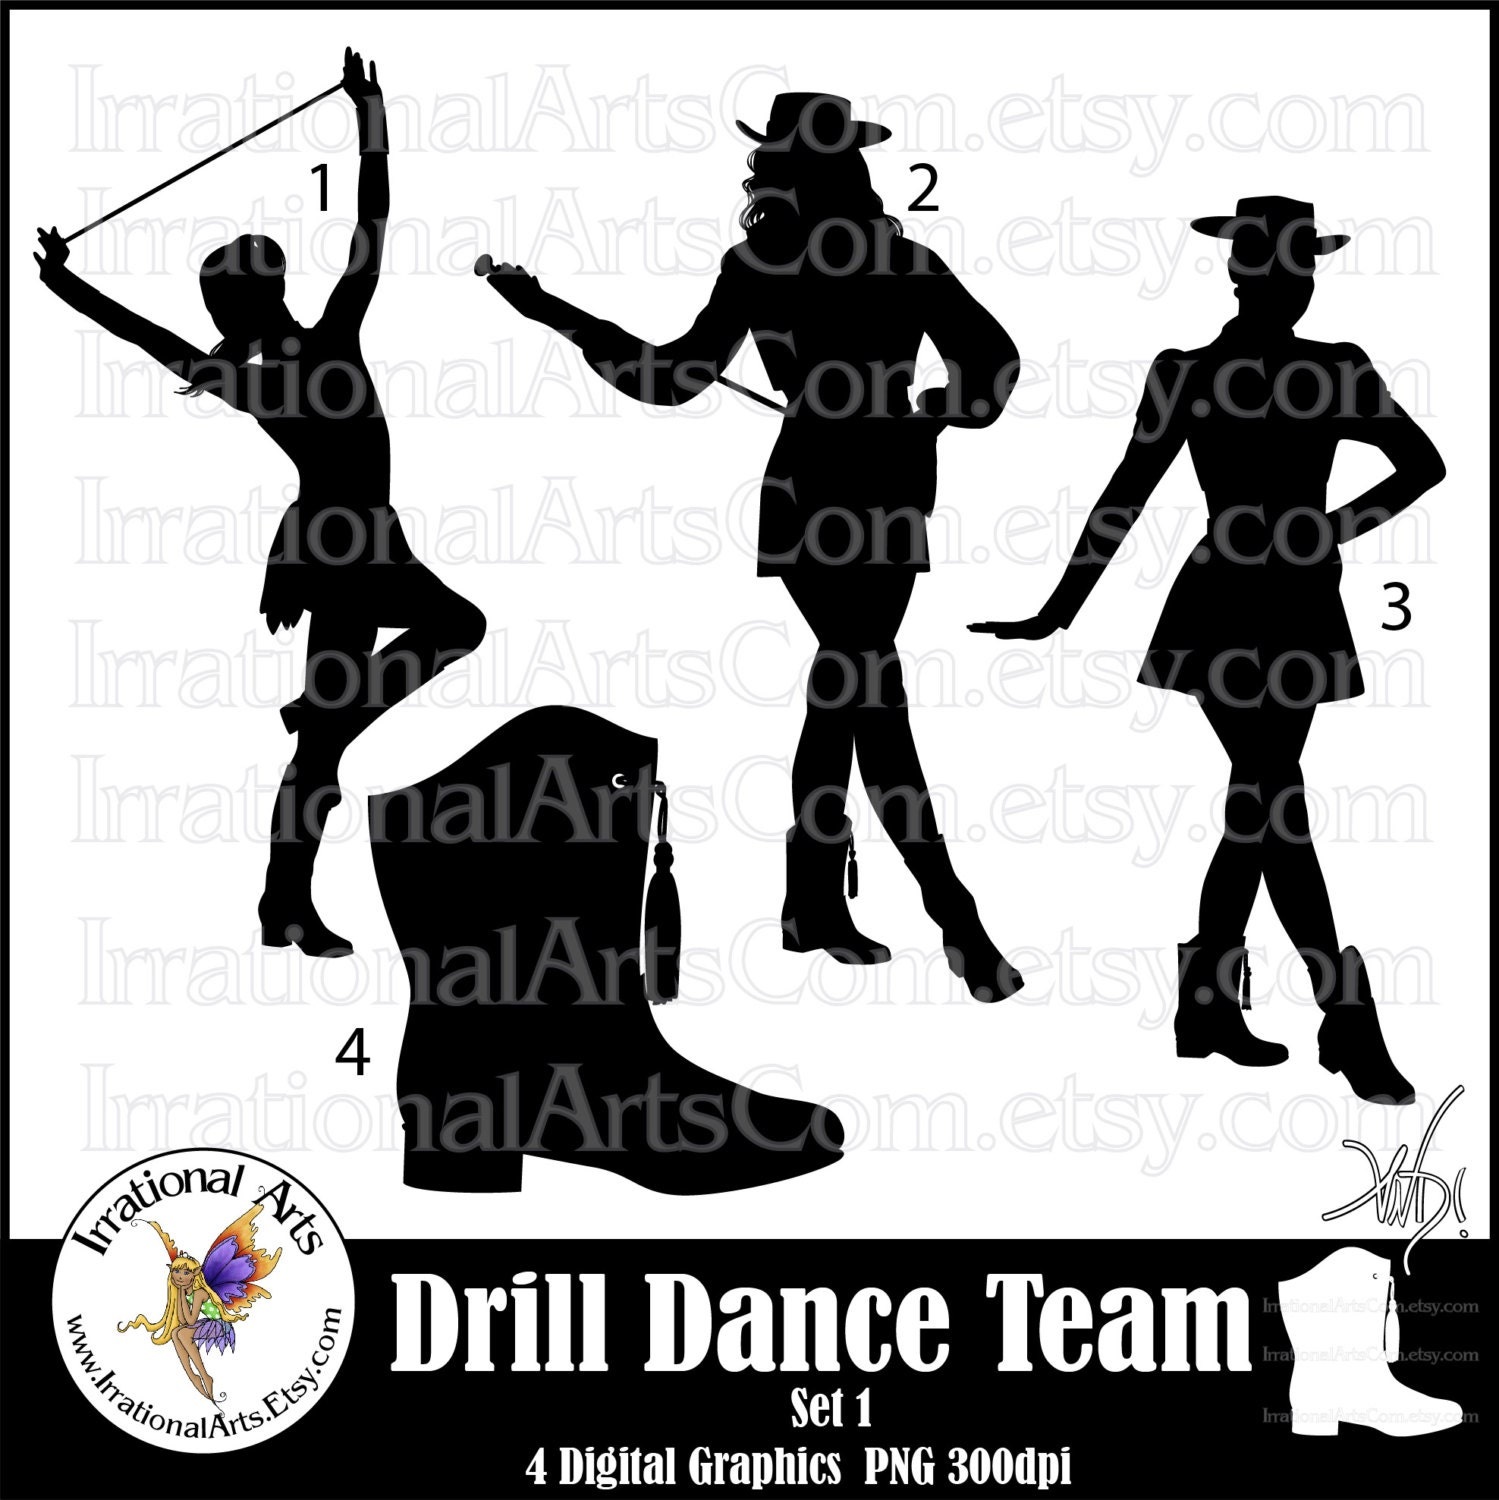 Drill Dance Team Silhouettes set 1 4 png digital graphics